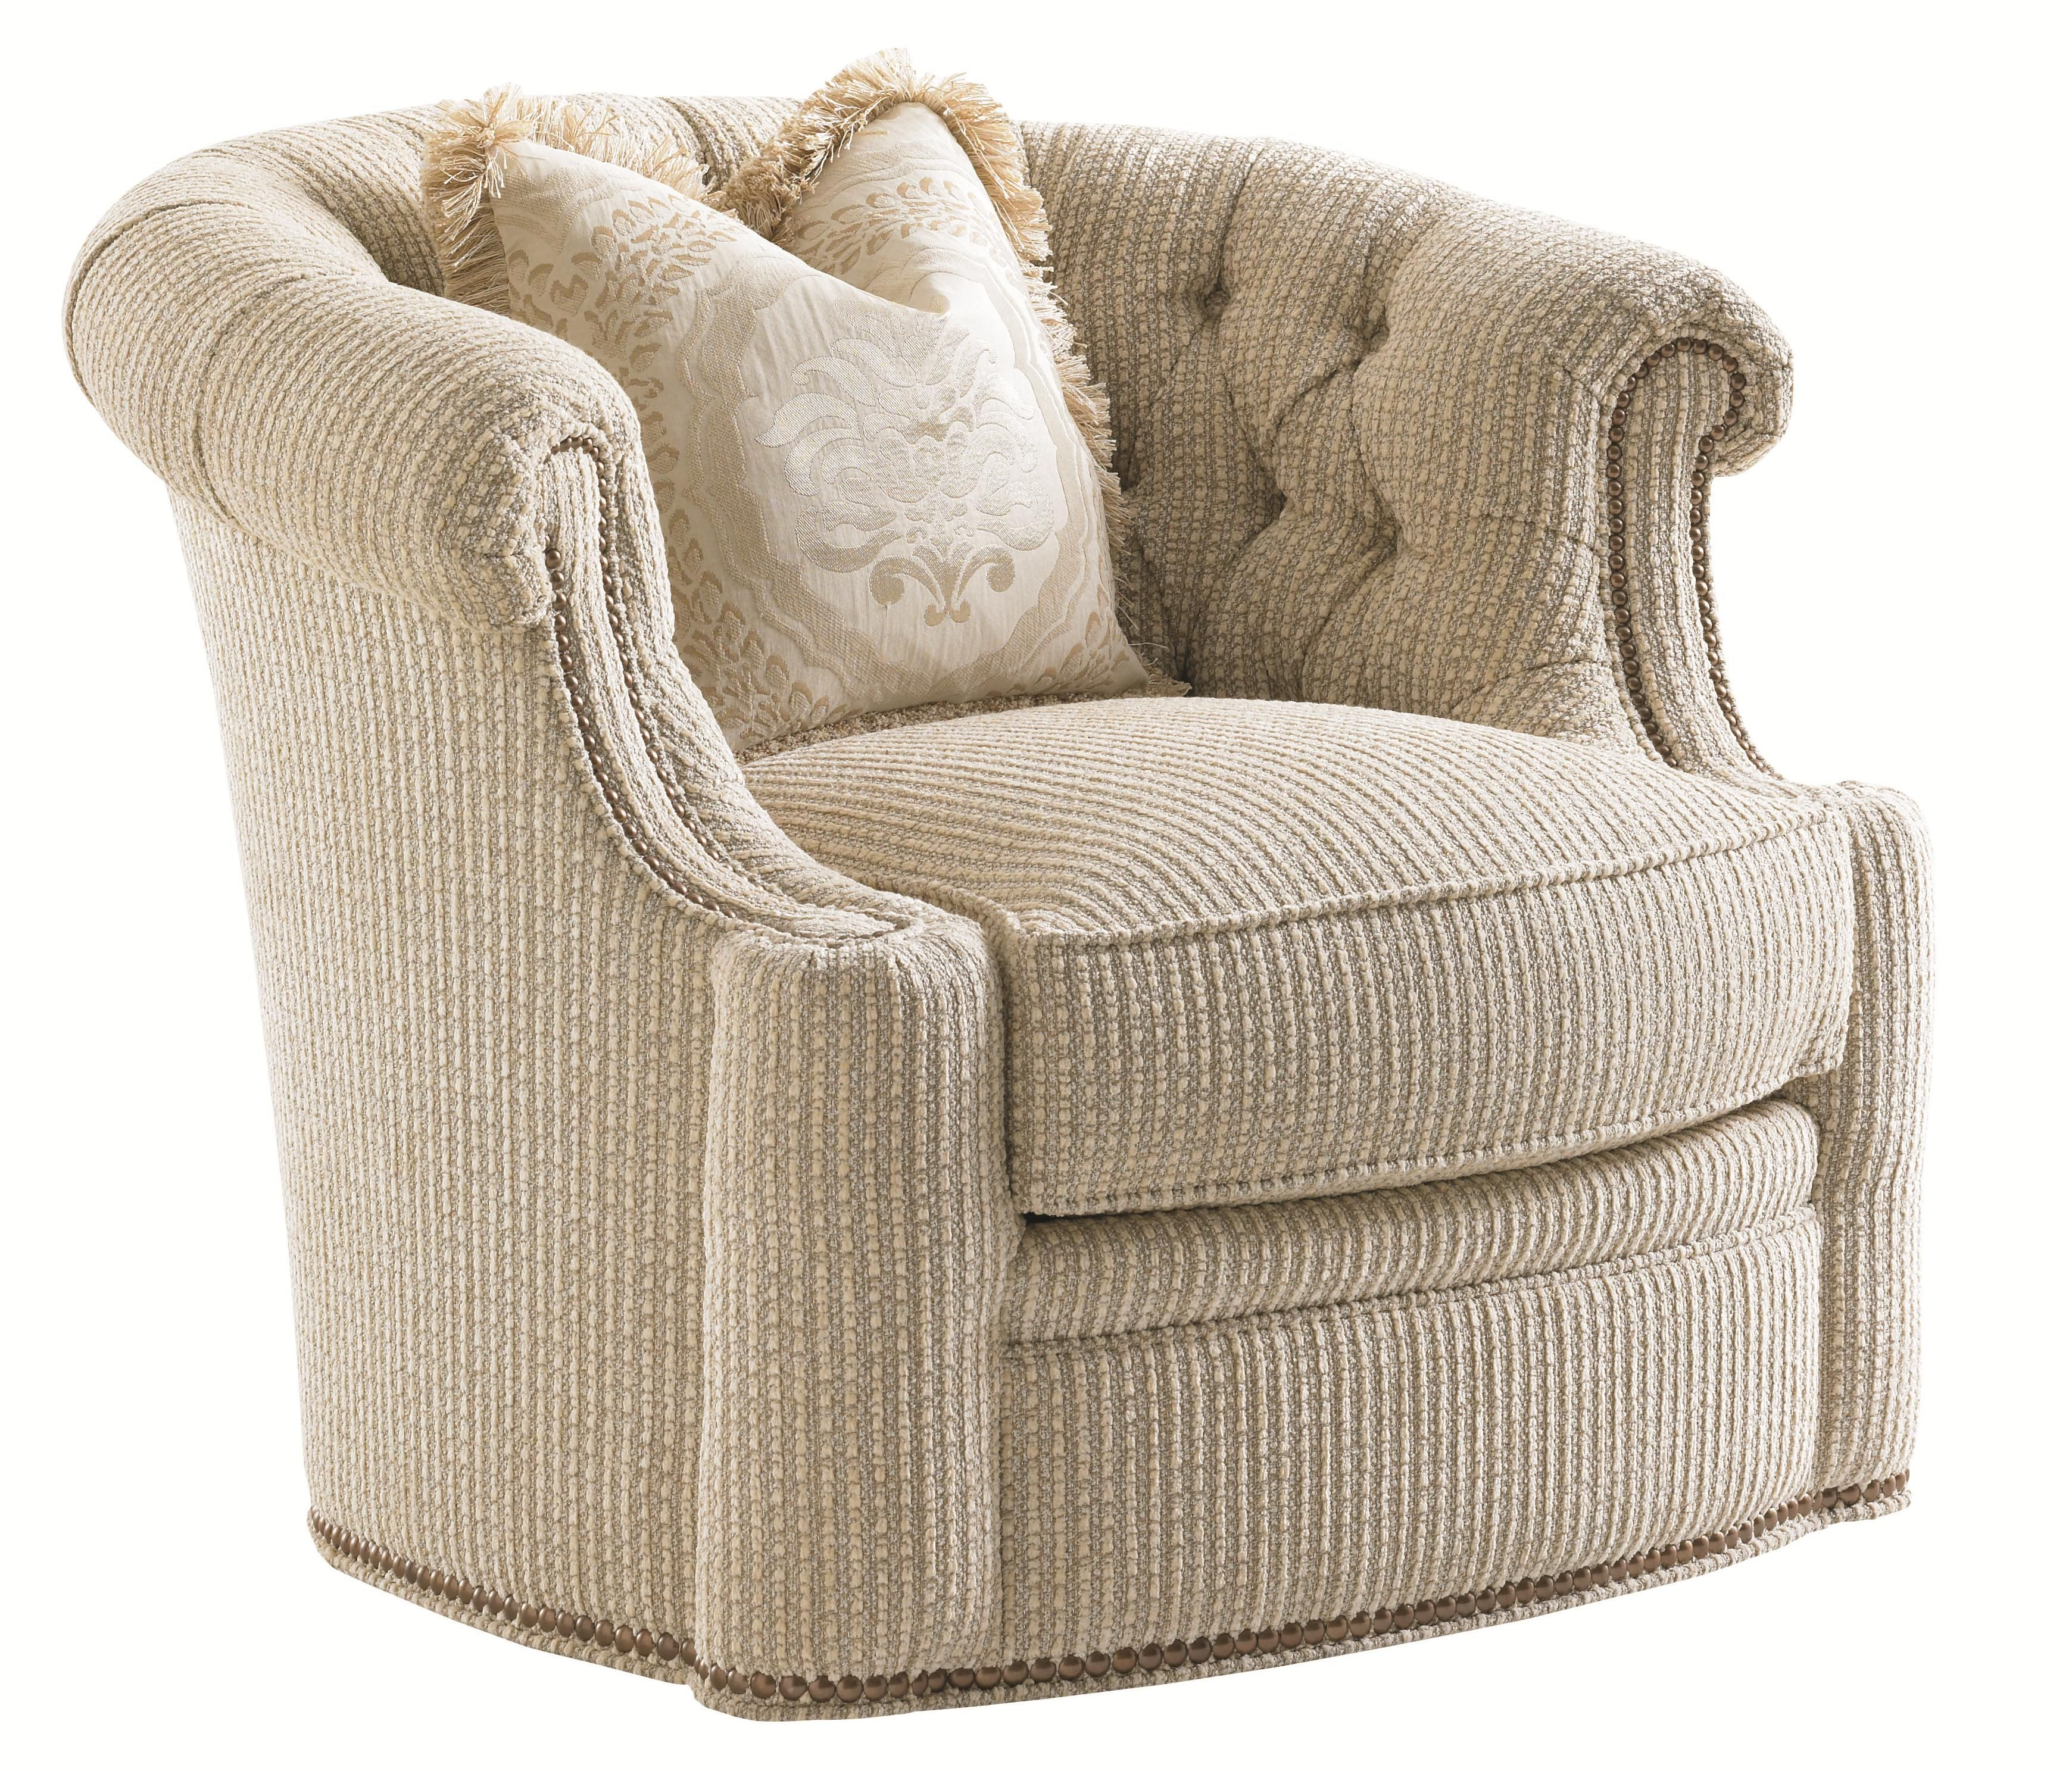 Florentino Feroni Swivel Tub Chair With Tufted Back And